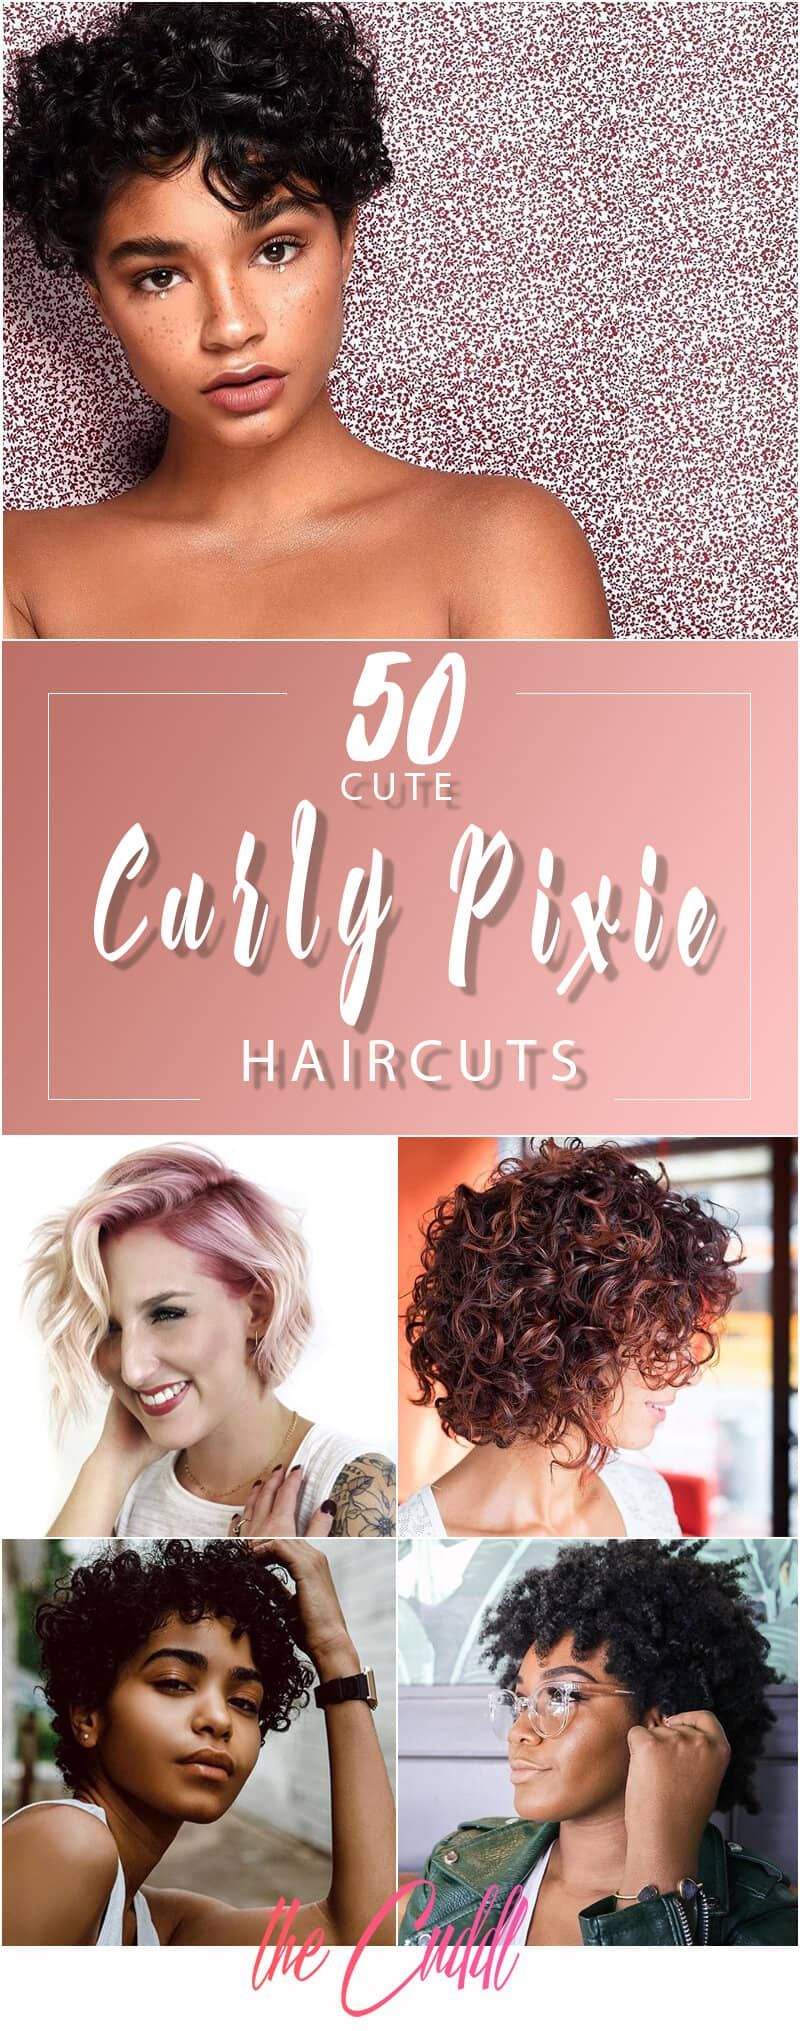 50 Bold Curly Pixie Cuts To Transform Your Style